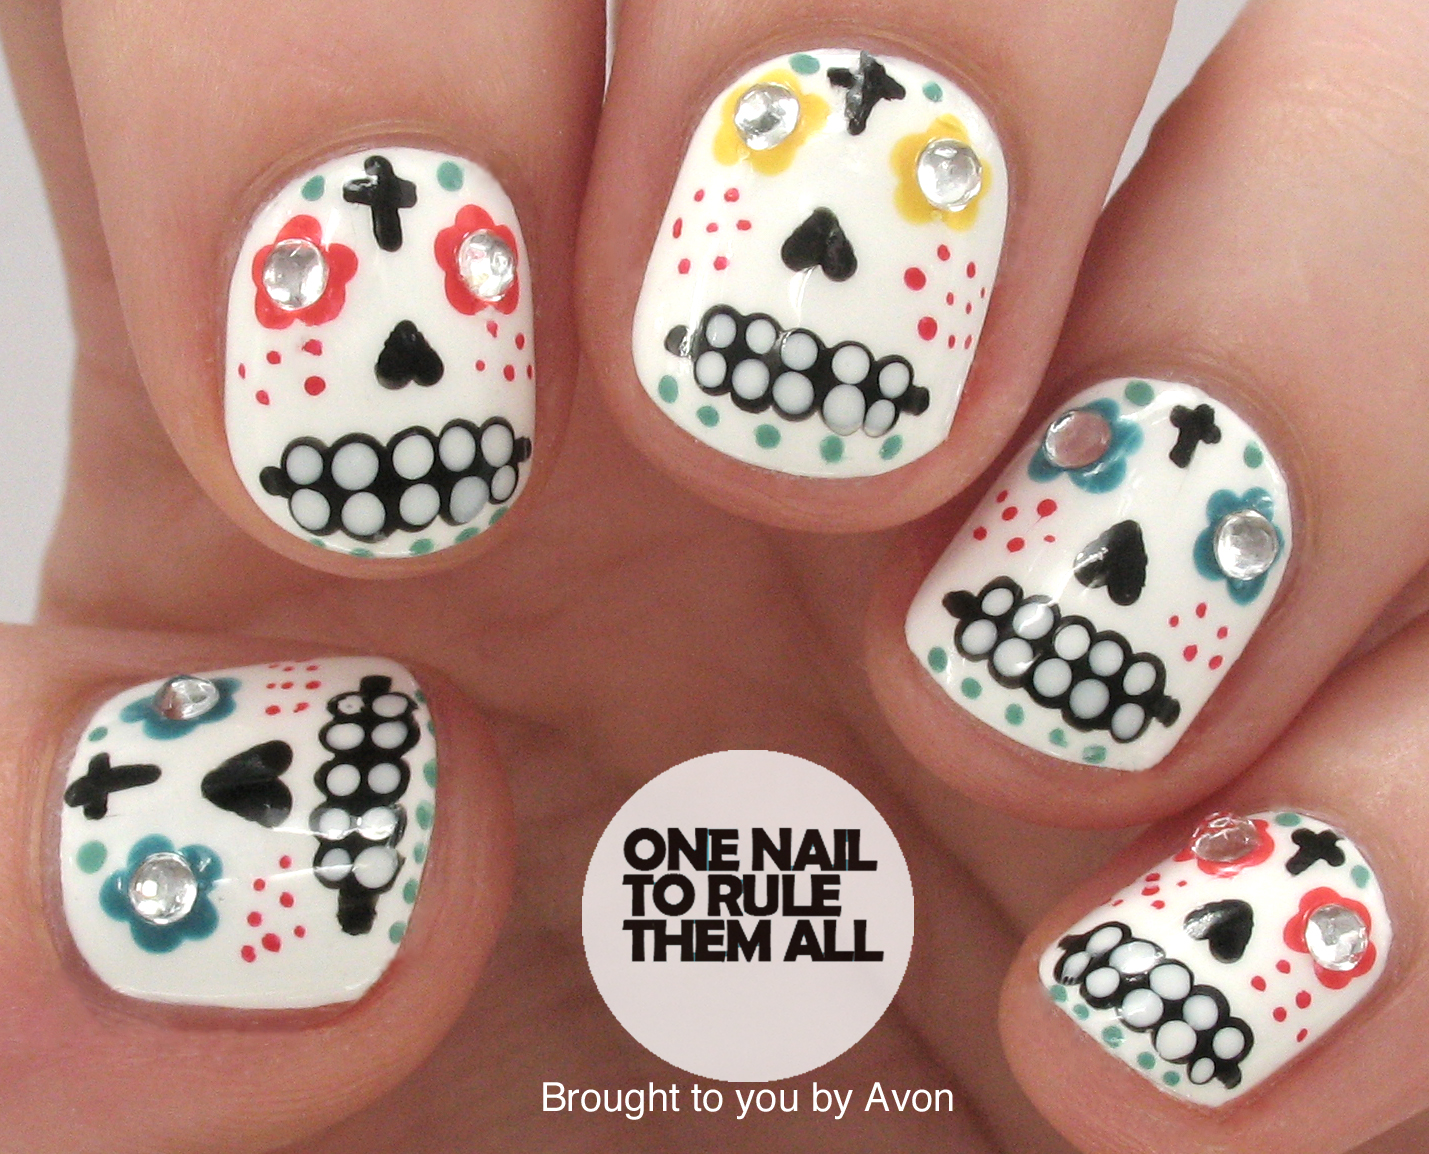 One Nail To Rule Them All: Sugar Skulls Nail Art for Avon